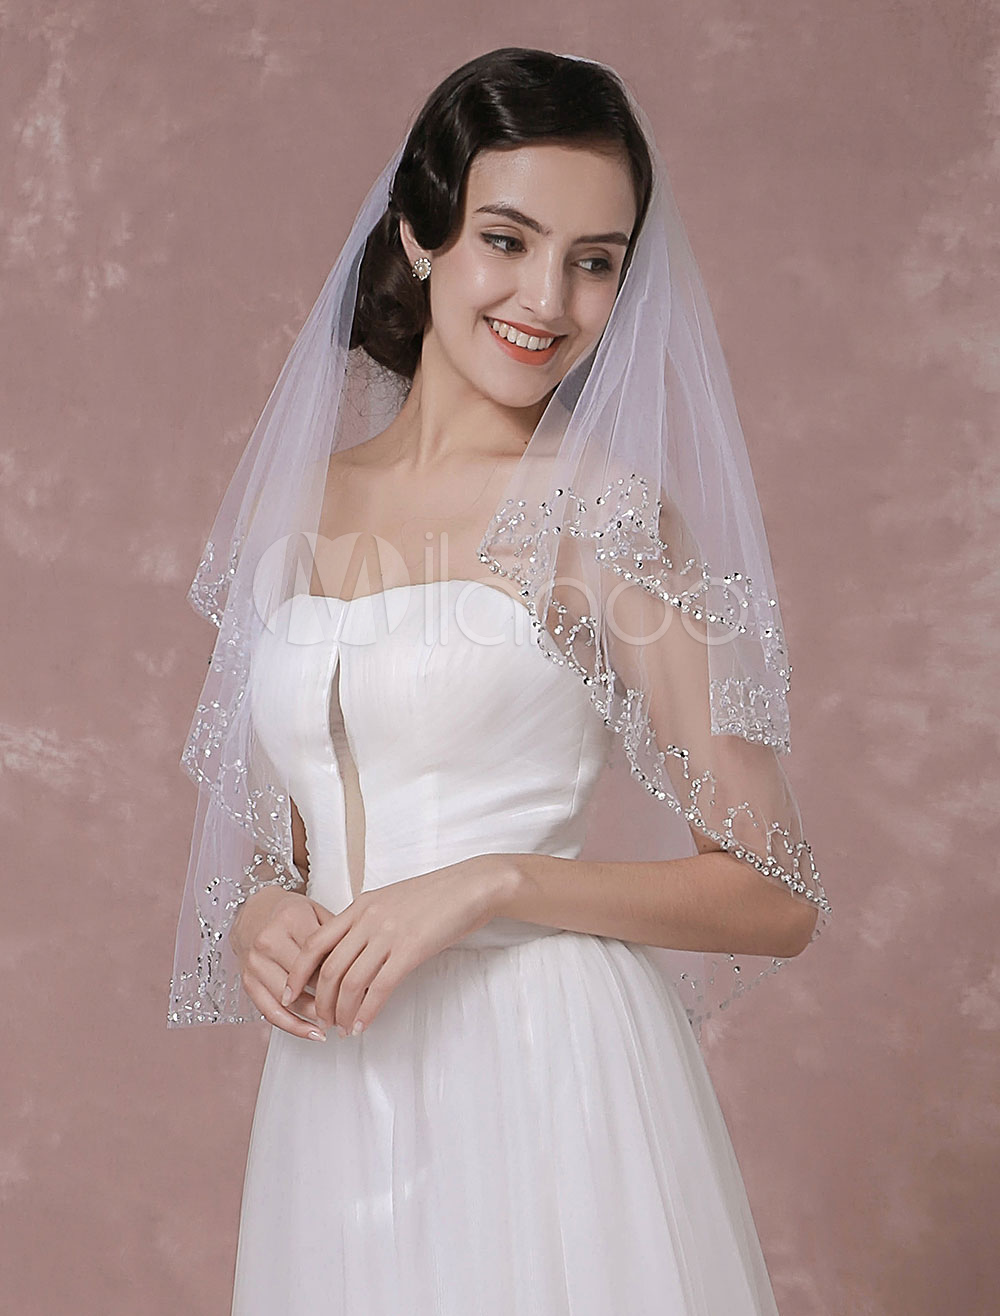 Buy Tulle Wedding Veil Sequins 2-Tier Bridal Veil With Handmade Beaded Edge for $27.89 in Milanoo store